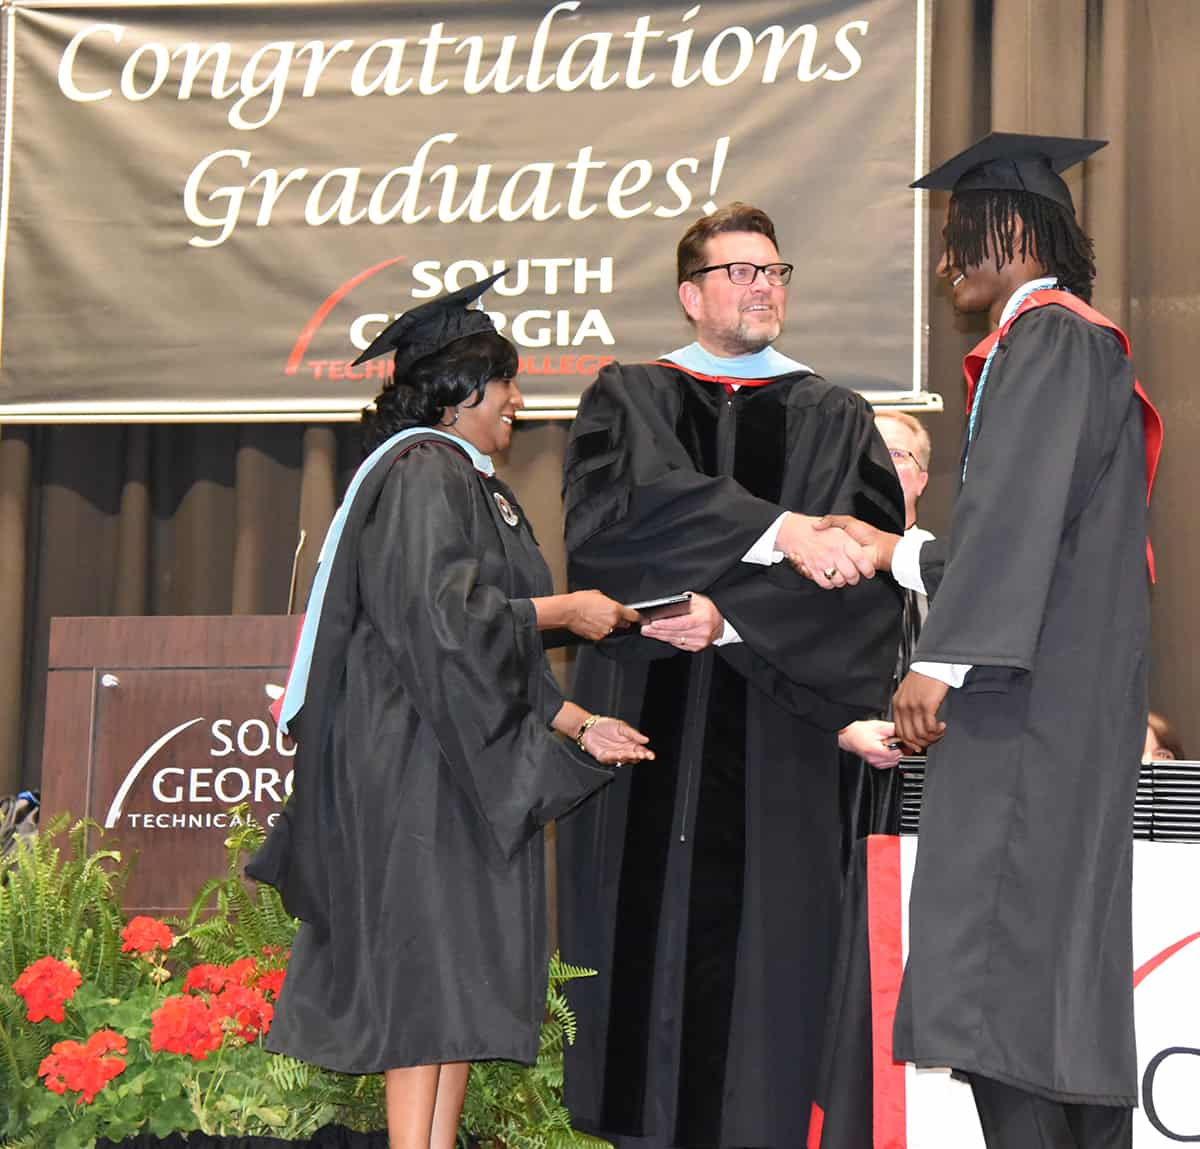 South Georgia Technical College's Deo Cochran was able to join SGTC President Dr. John Watford in awarding her son, Brandon Cochran with his associate of applied science degree at SGTC.  Brandon Cochran took advantage of the dual enrollment program and earn his associate degree before receiving his high school diploma.